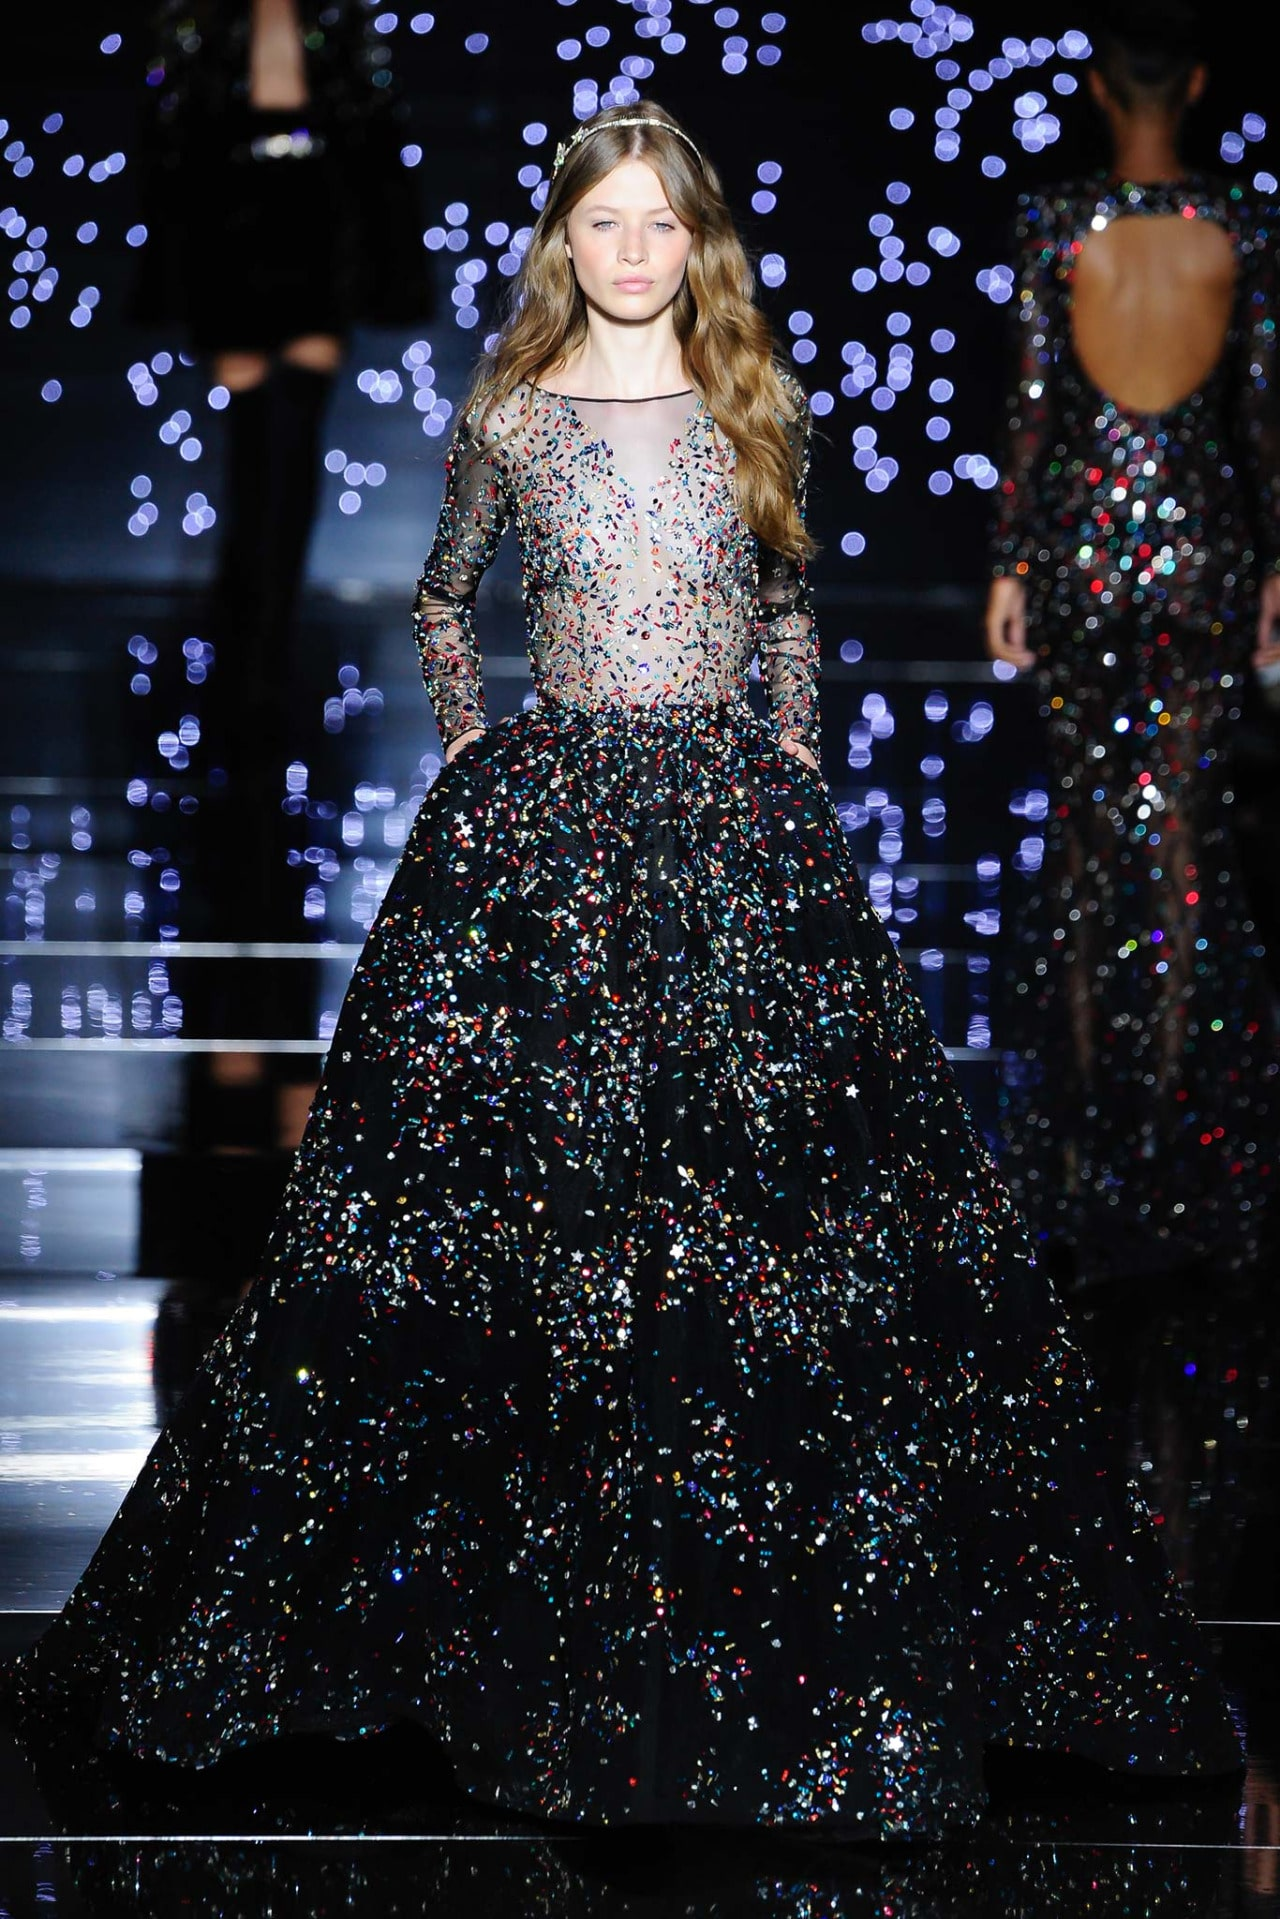 zuhair-murad-fall-2015-collection-2